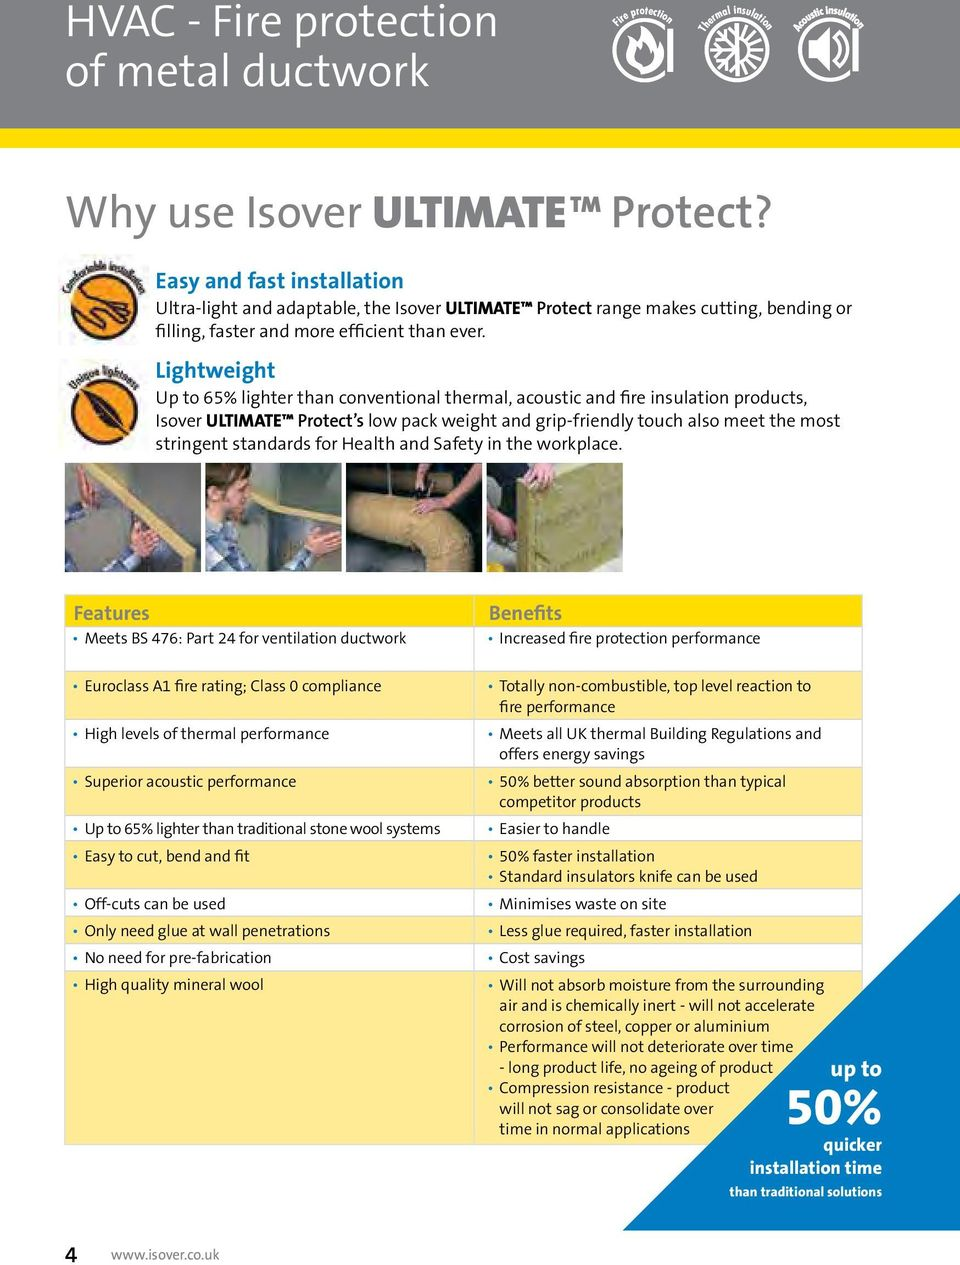 Lightweight Up to 65% lighter than conventional thermal, acoustic and fire insulation products, Isover Ultimate Protect s low pack weight and grip-friendly touch also meet the most stringent